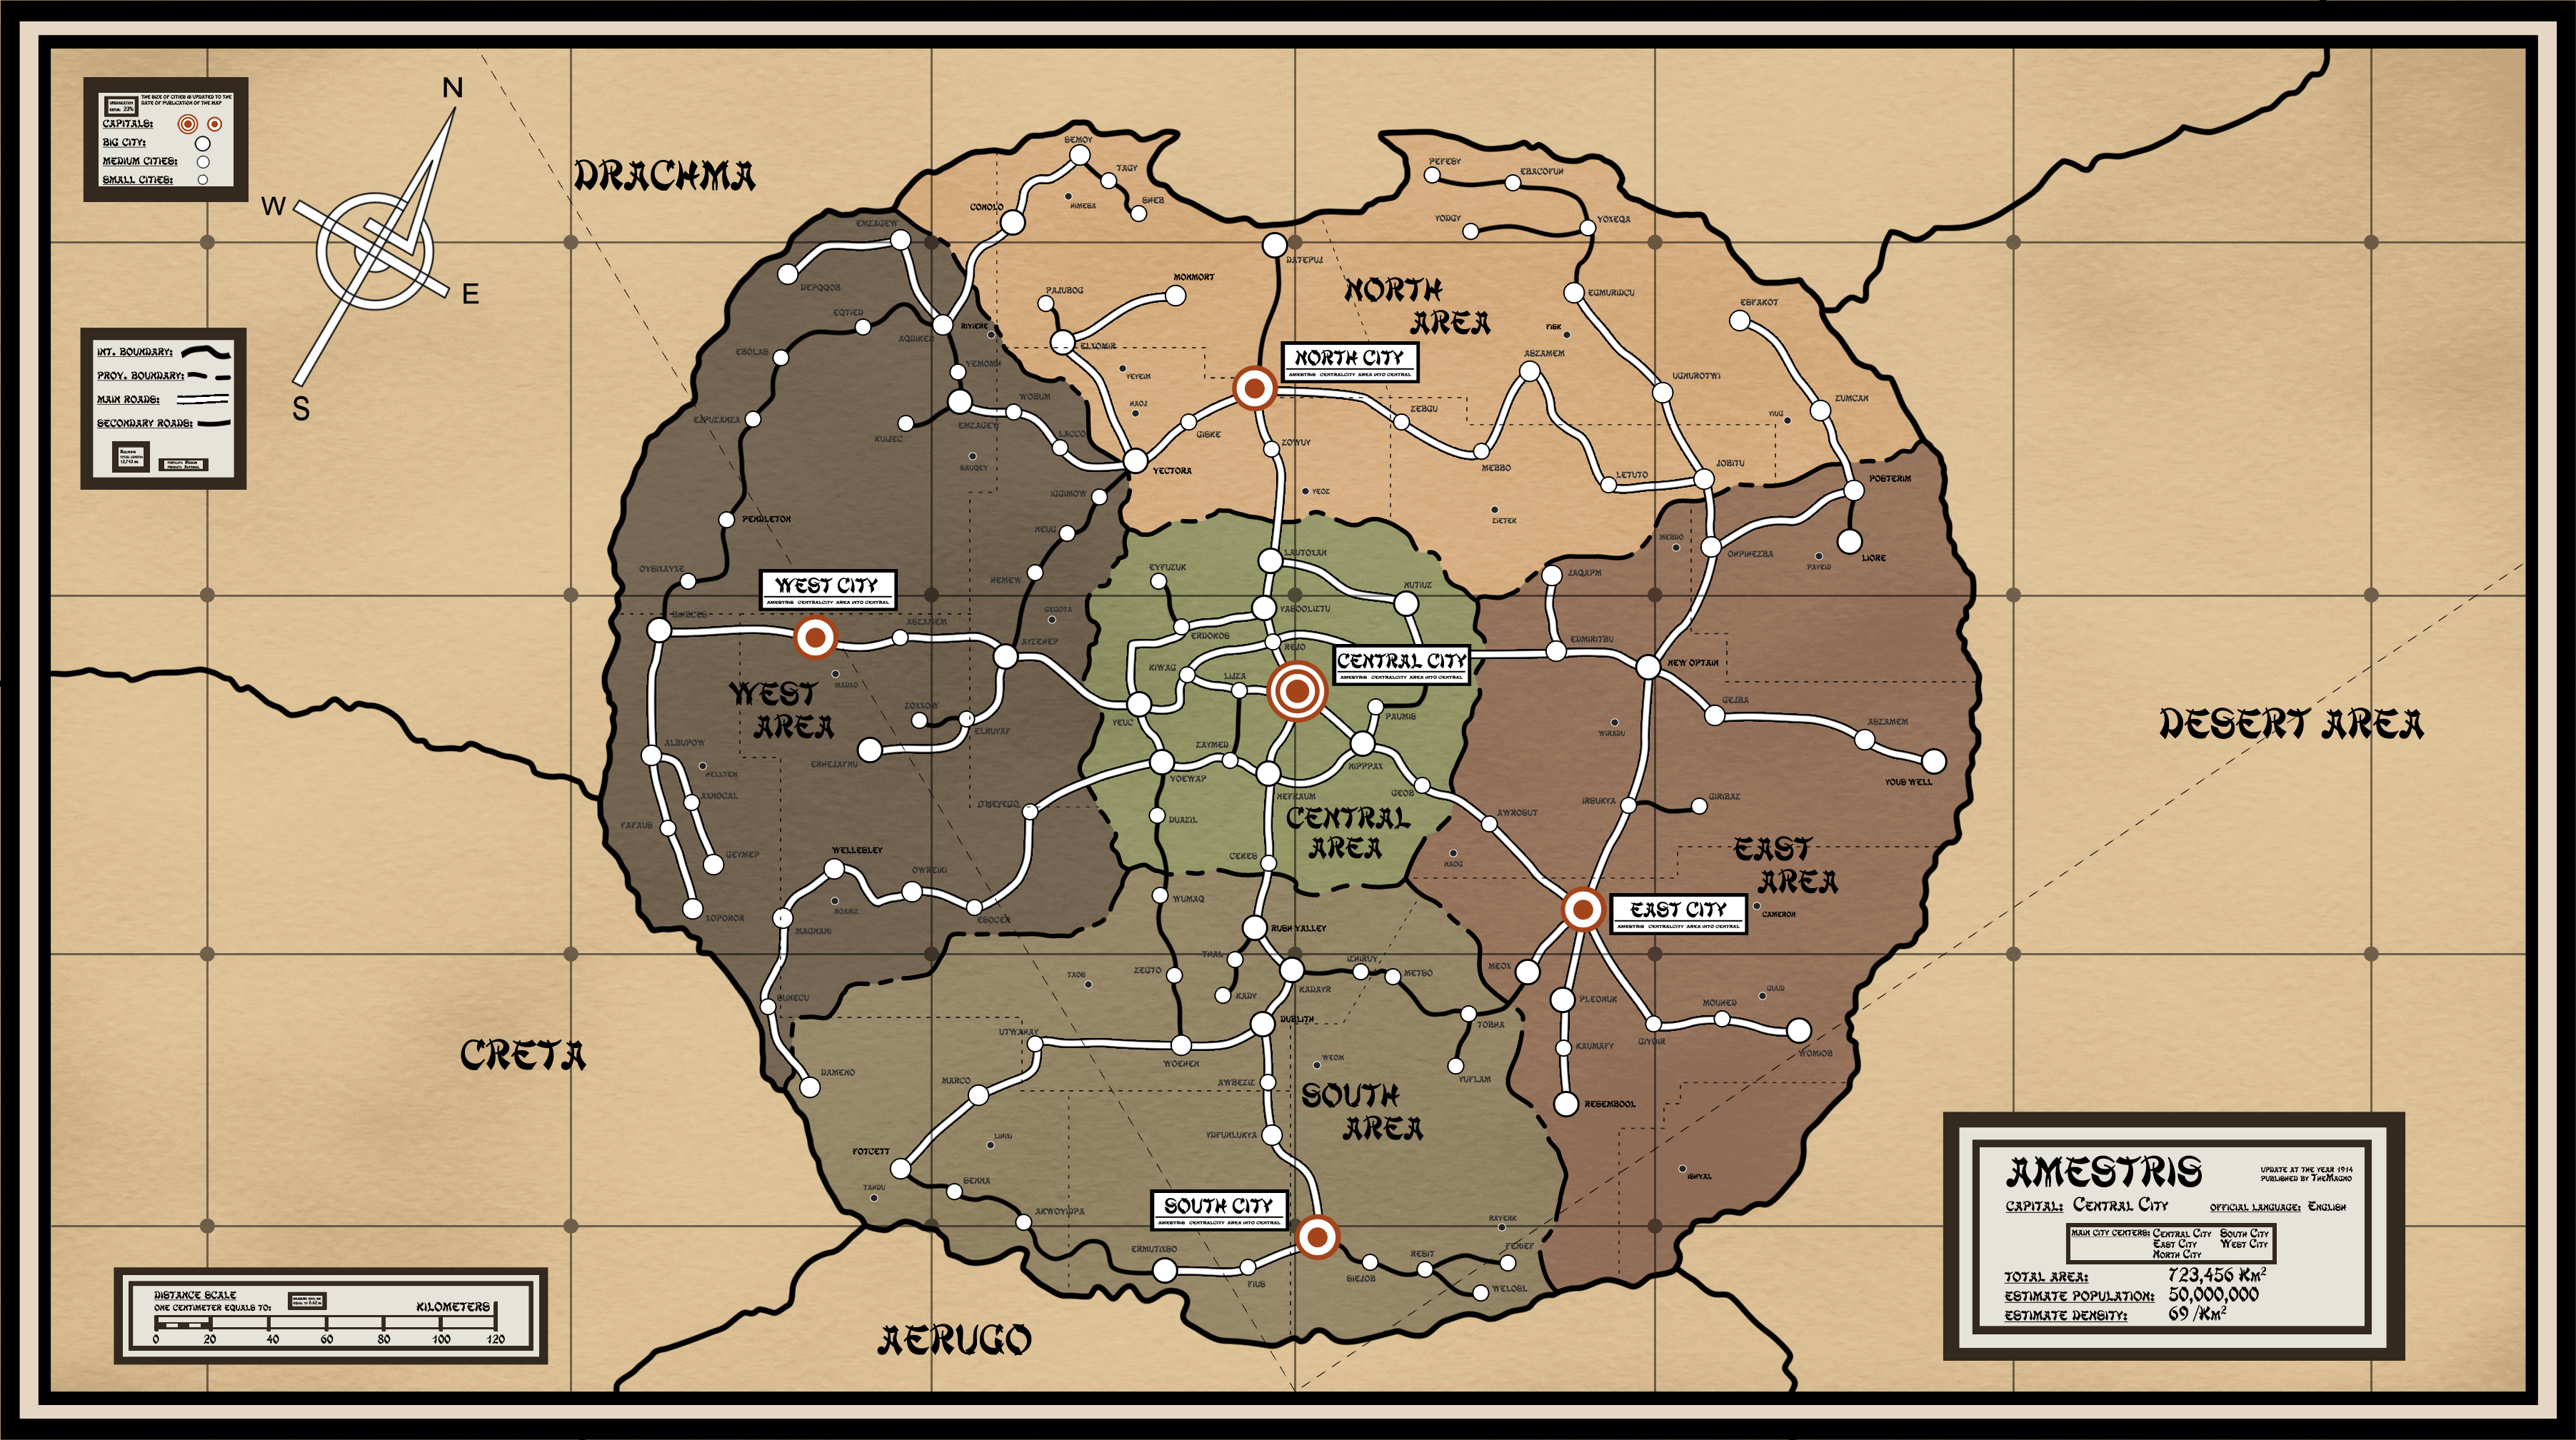 heroes of alchemy chapter aseies himaryan percy jackson we suggest referring to this map